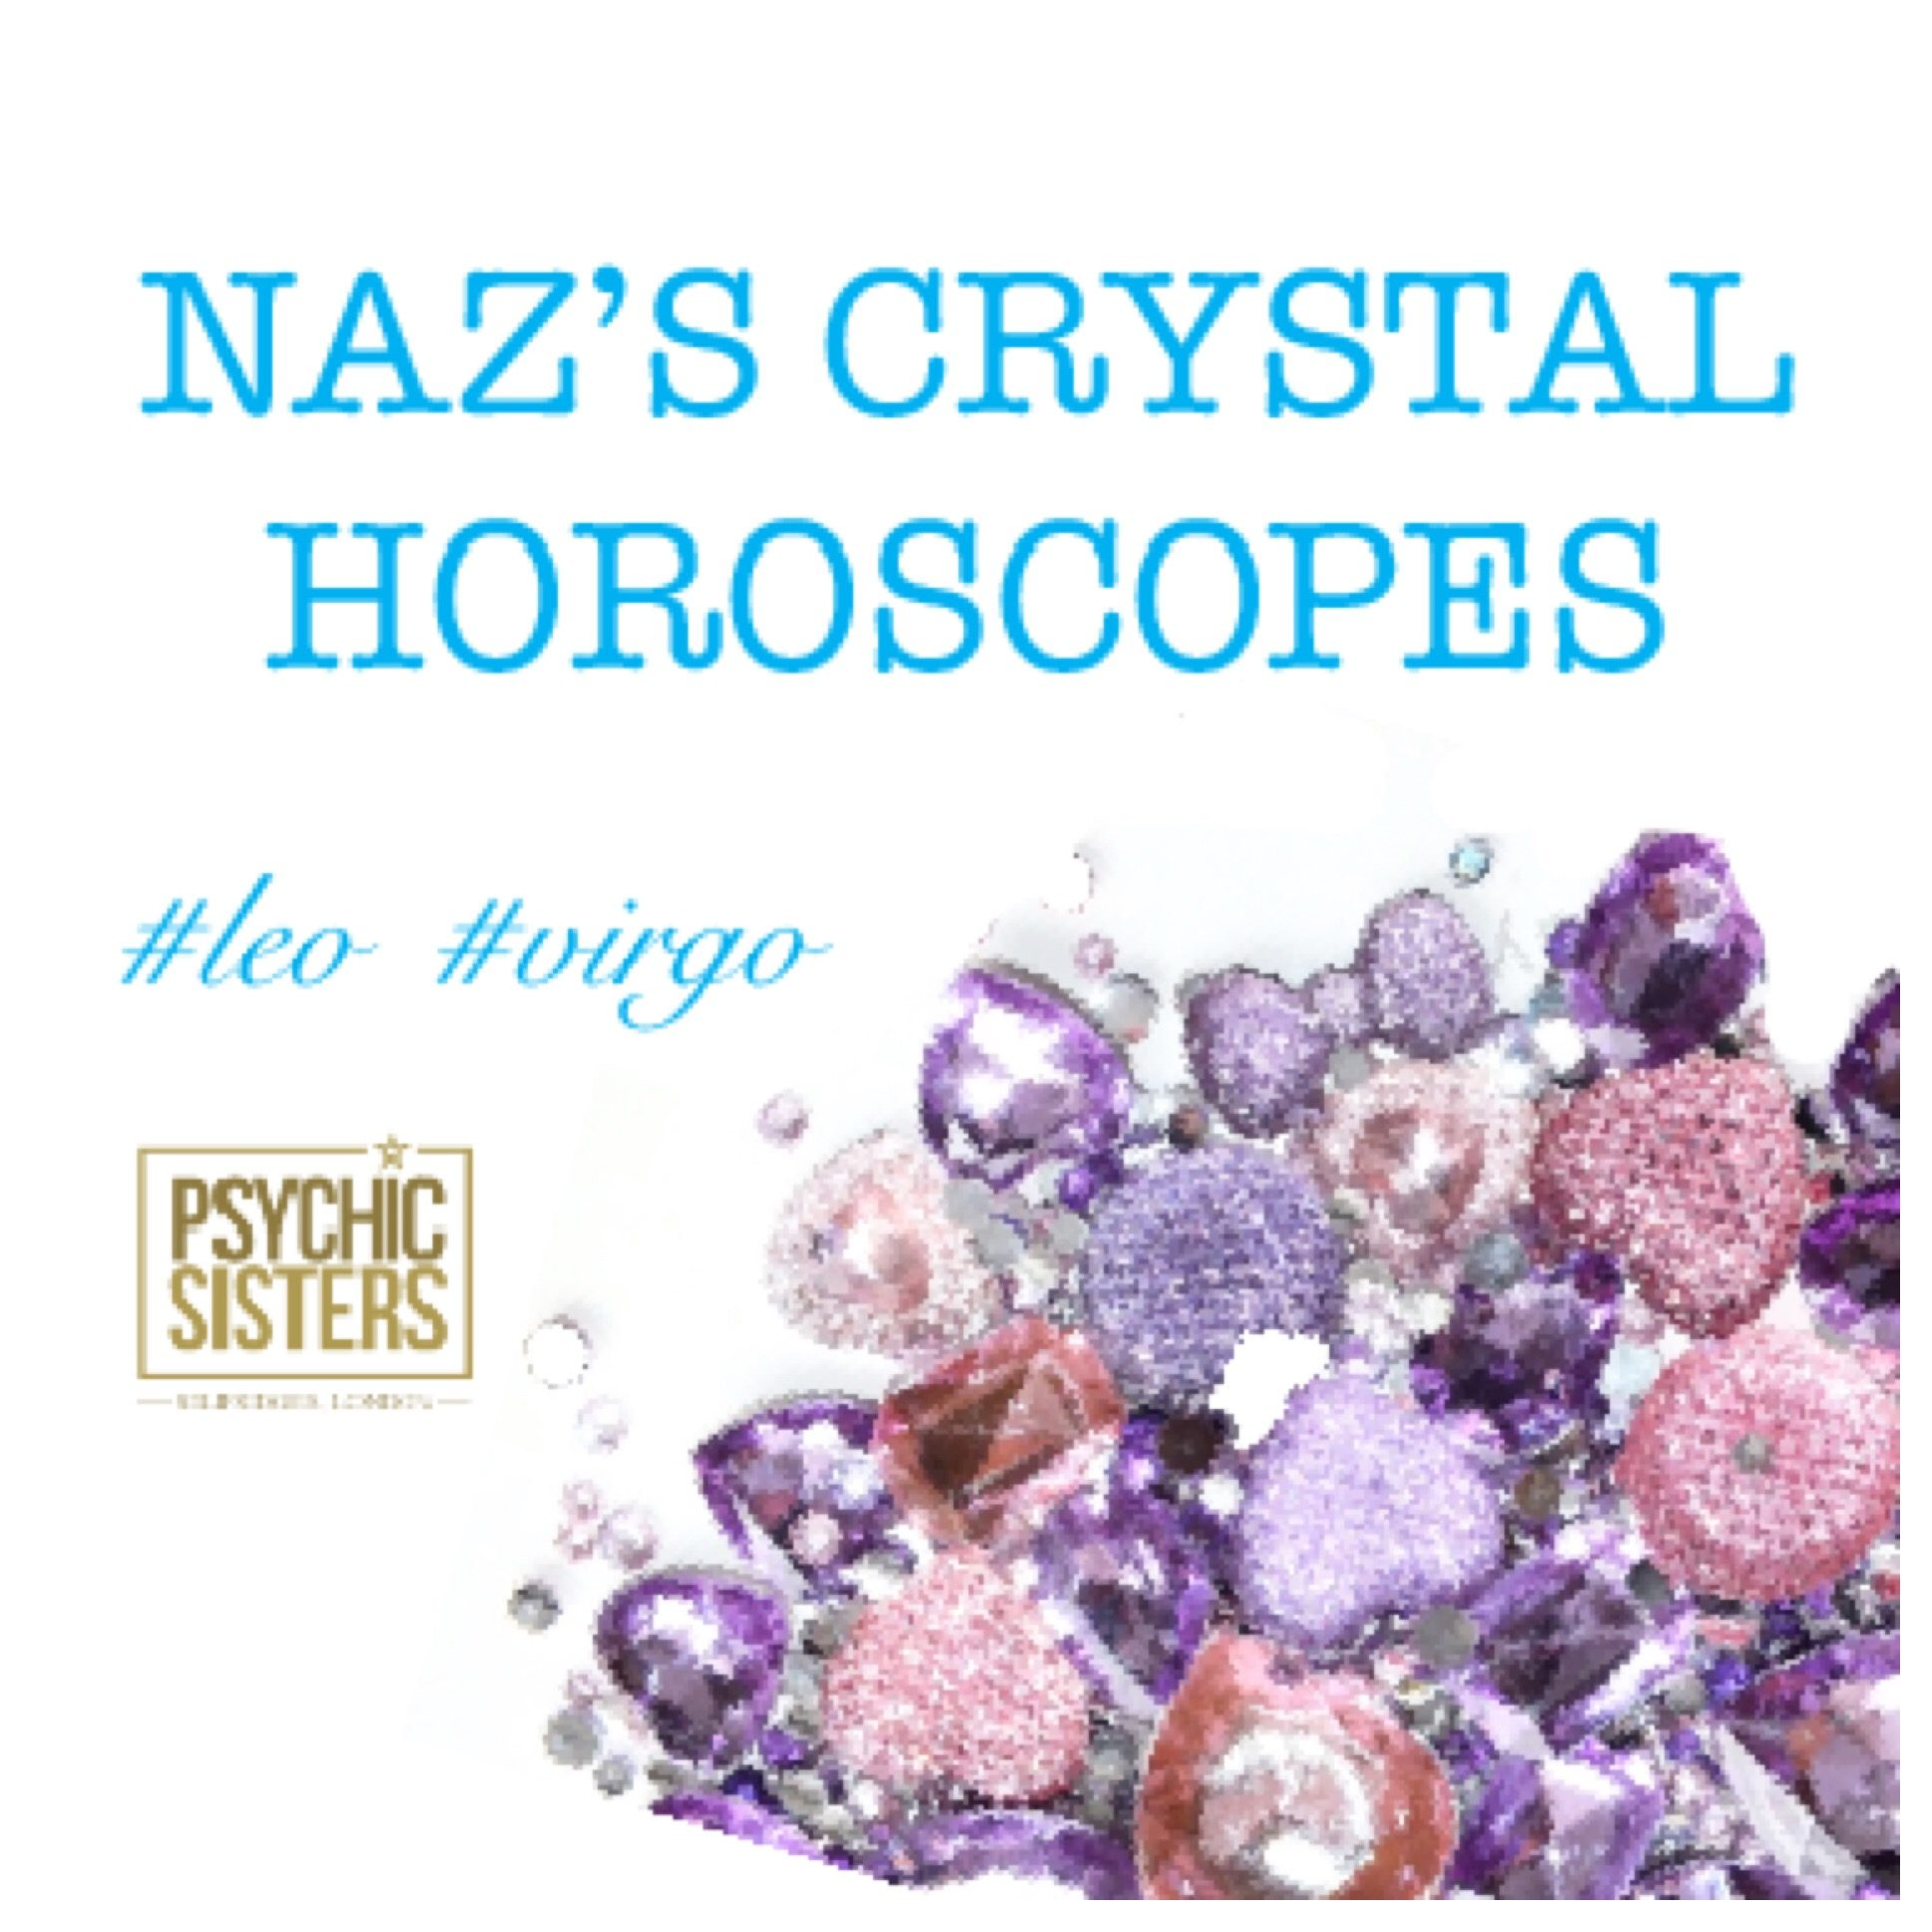 Naz's Crystal Horoscopes  28th January - 3rd February 2018